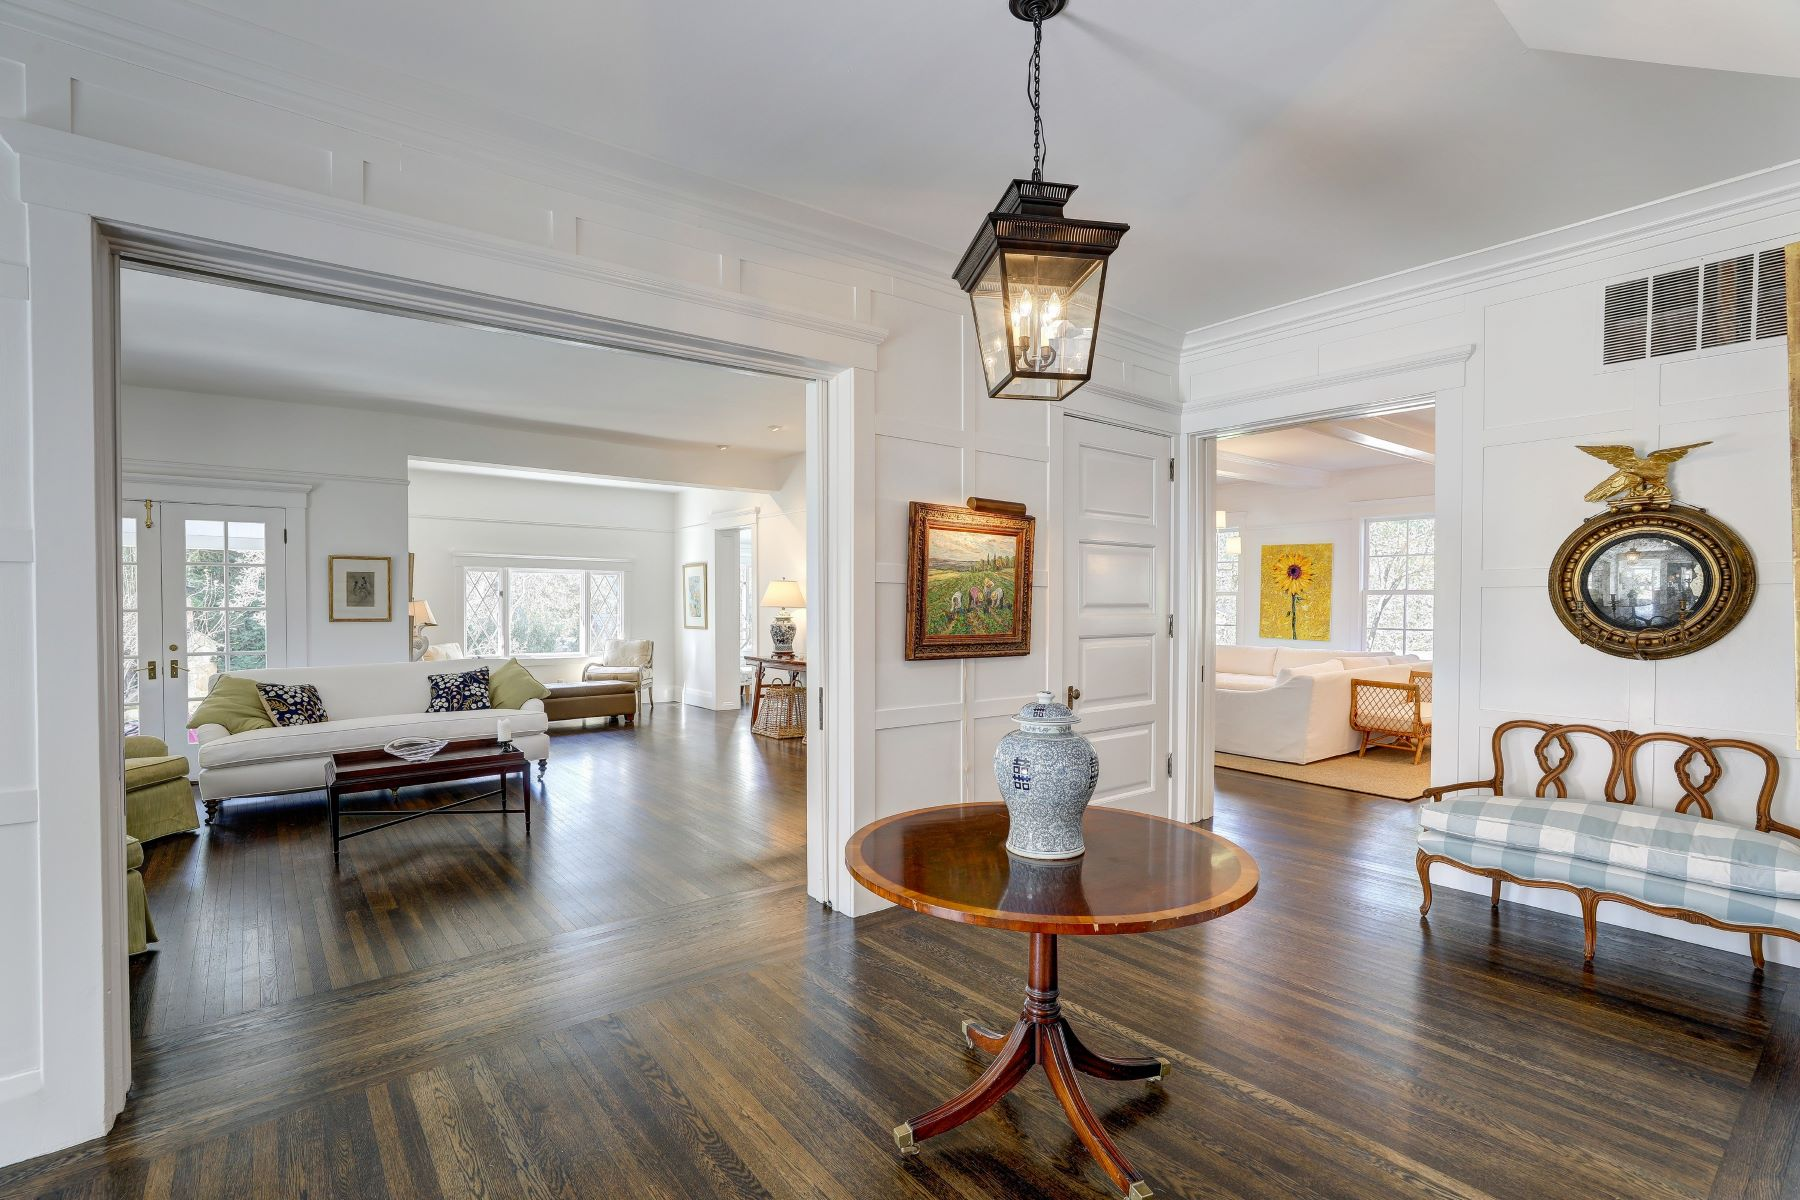 Single Family Homes for Sale at Iconic Historic Home 15 Culloden Park Road San Rafael, California 94901 United States